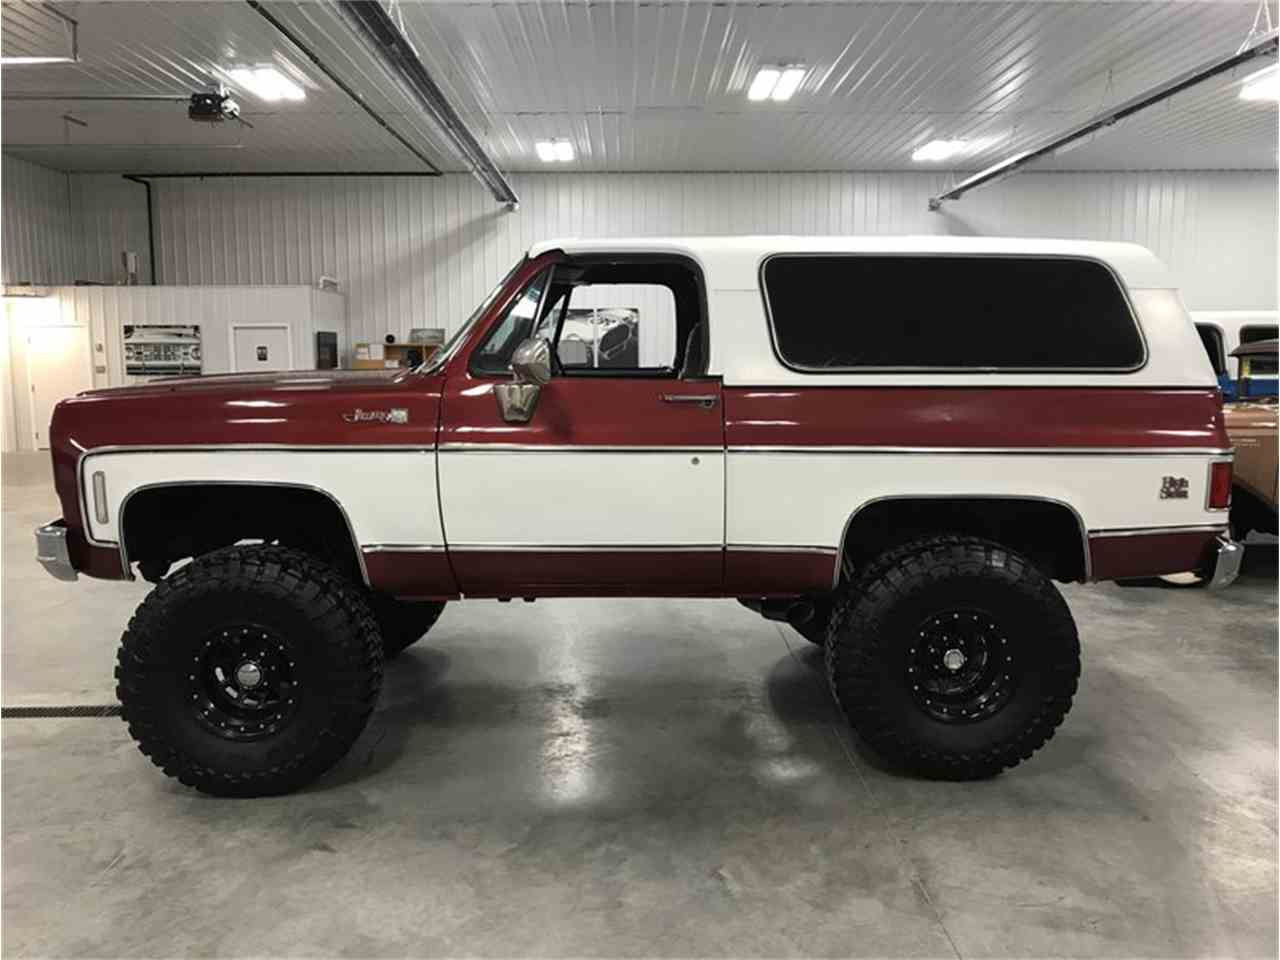 Houston Cars For Sale >> 1978 GMC Jimmy for Sale | ClassicCars.com | CC-1018450